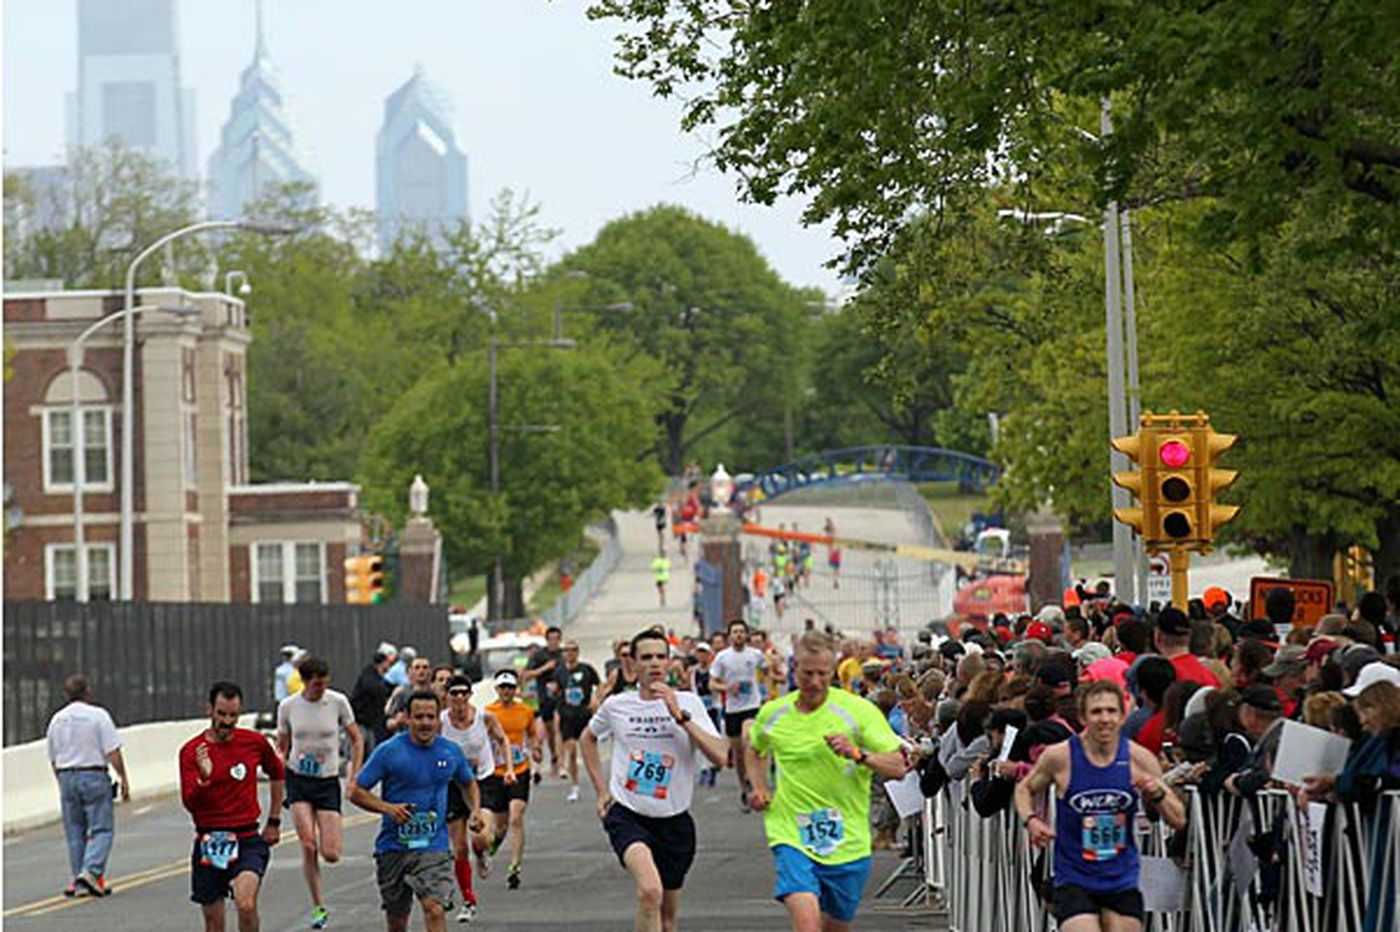 40,000 expected for Broad Street Run